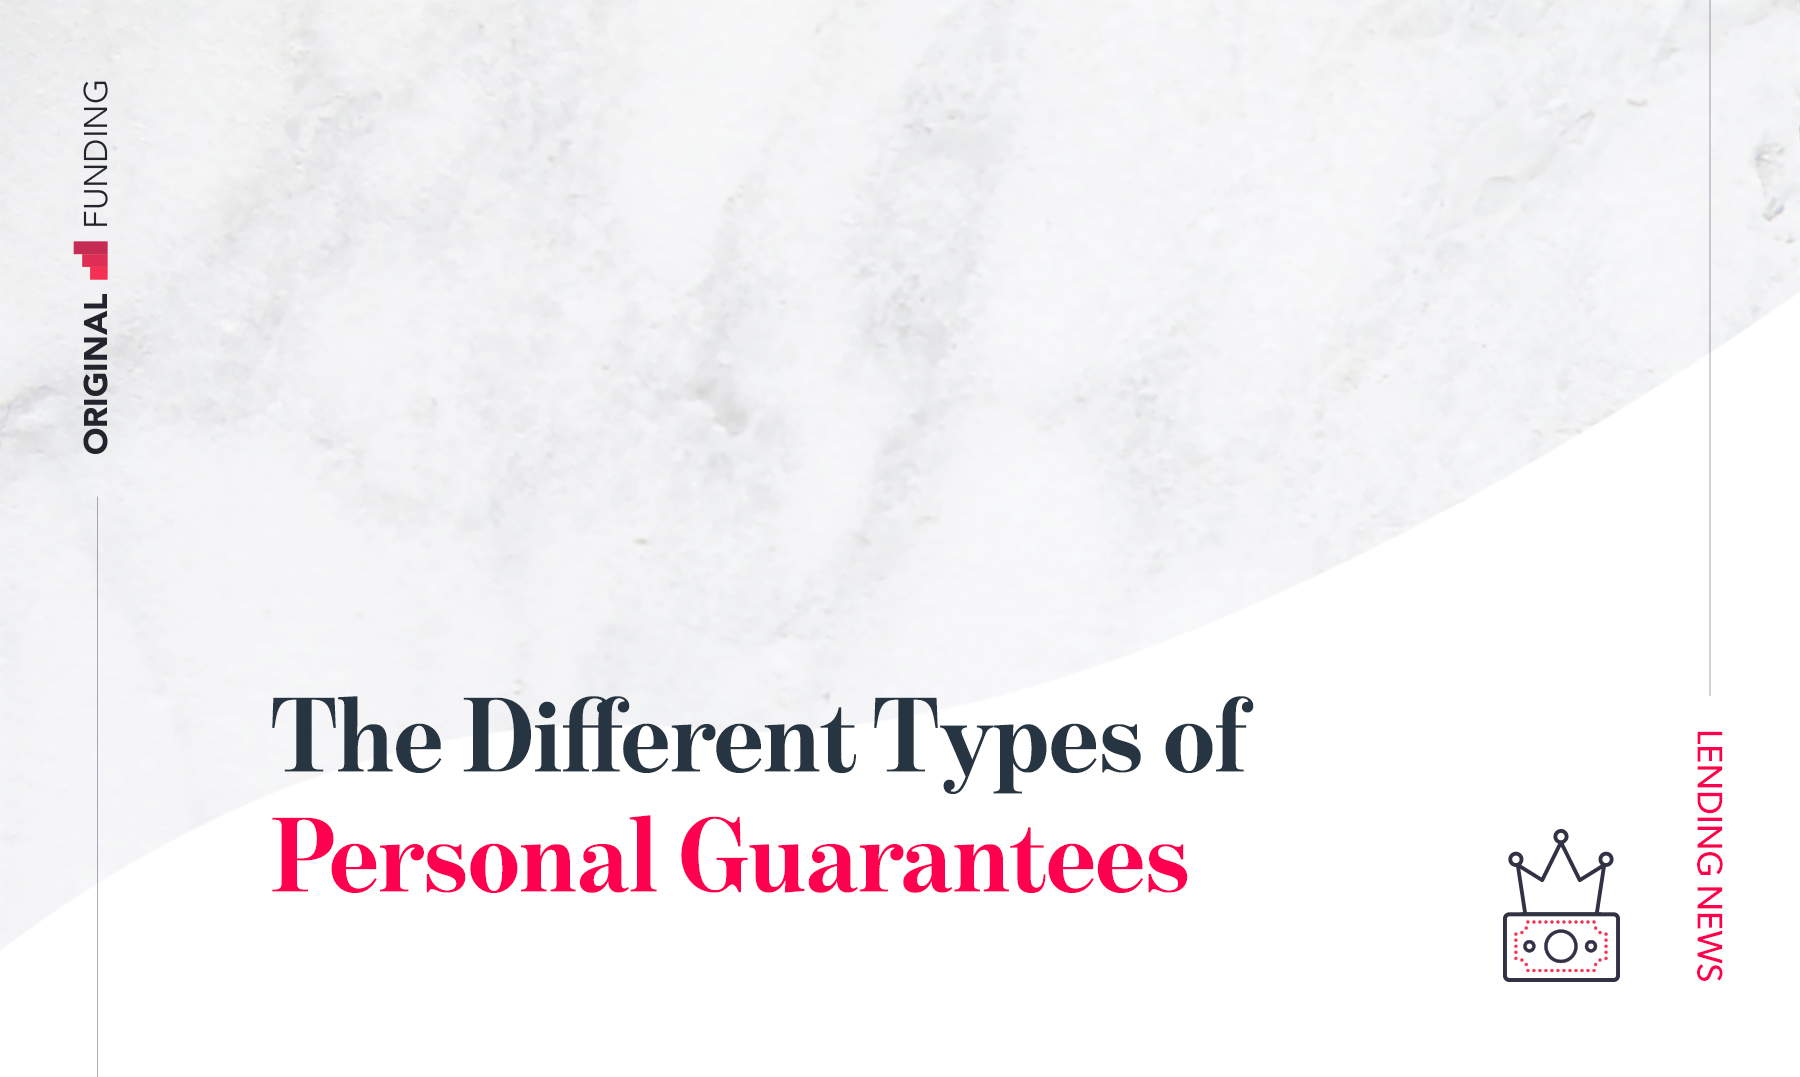 The Different Types of Personal Guarantees